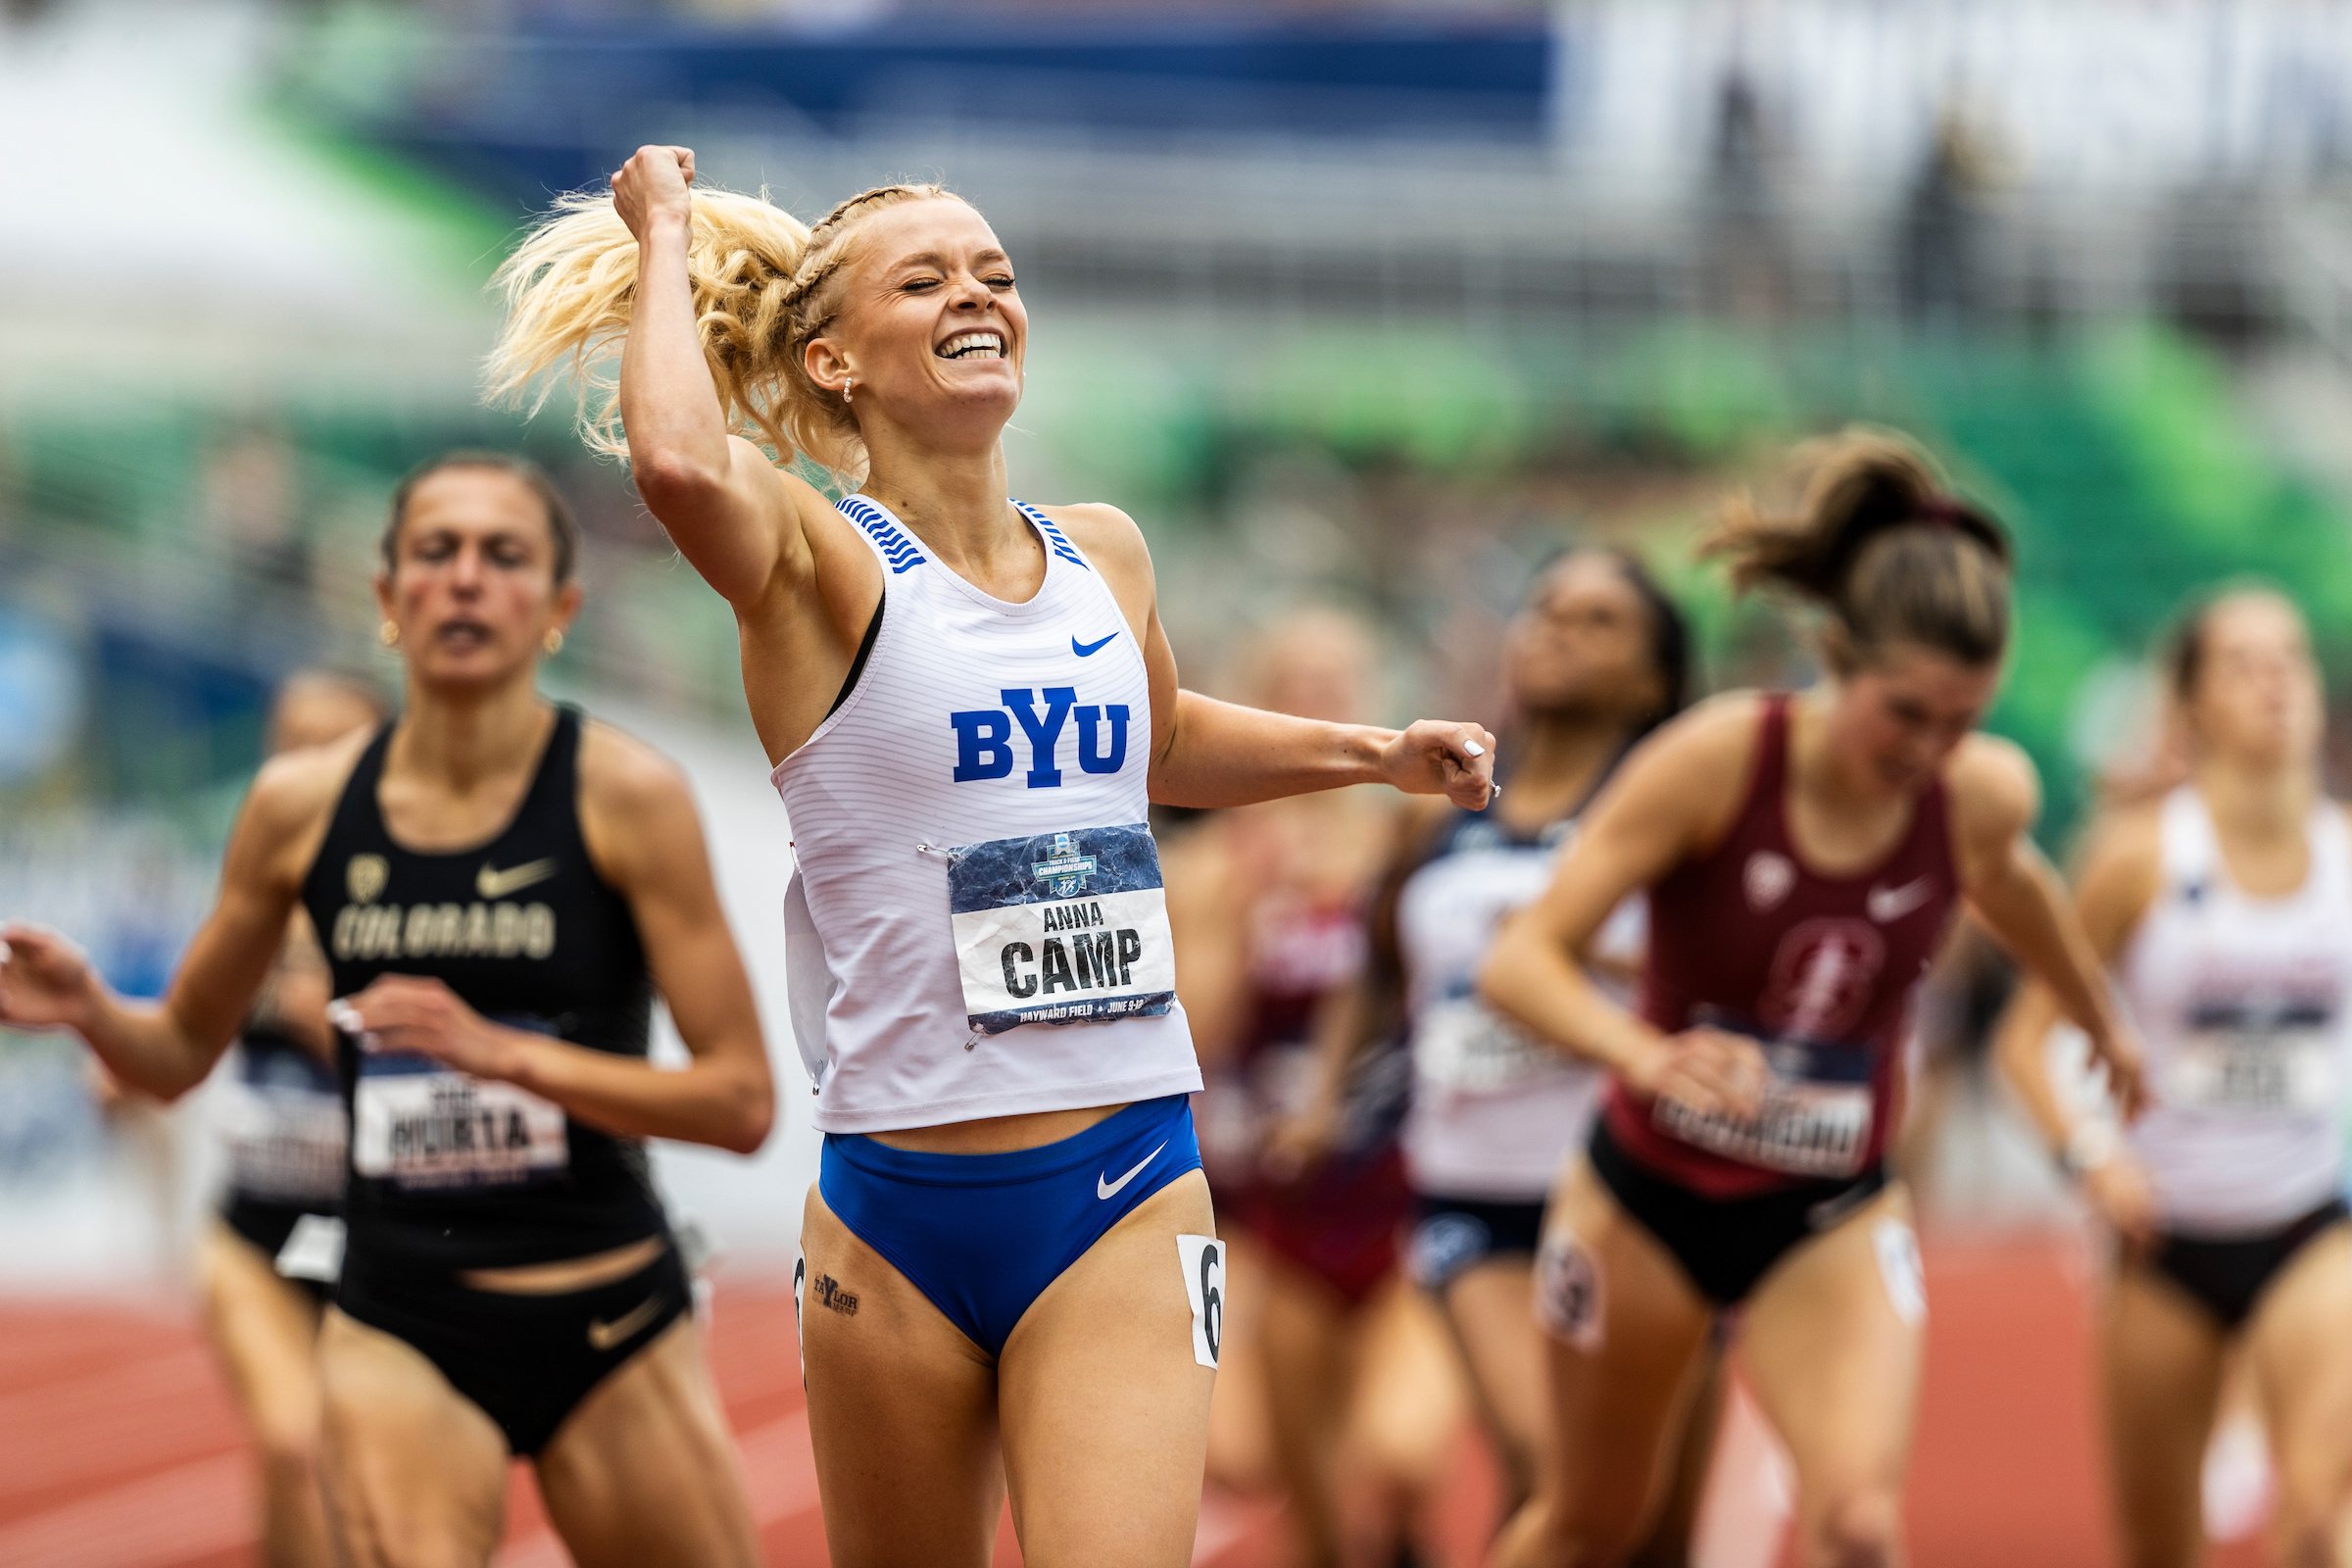 BYU's Anna Camp celebrates after winning the women's 1,500-meter race at the NCAA outdoor track and field championships.